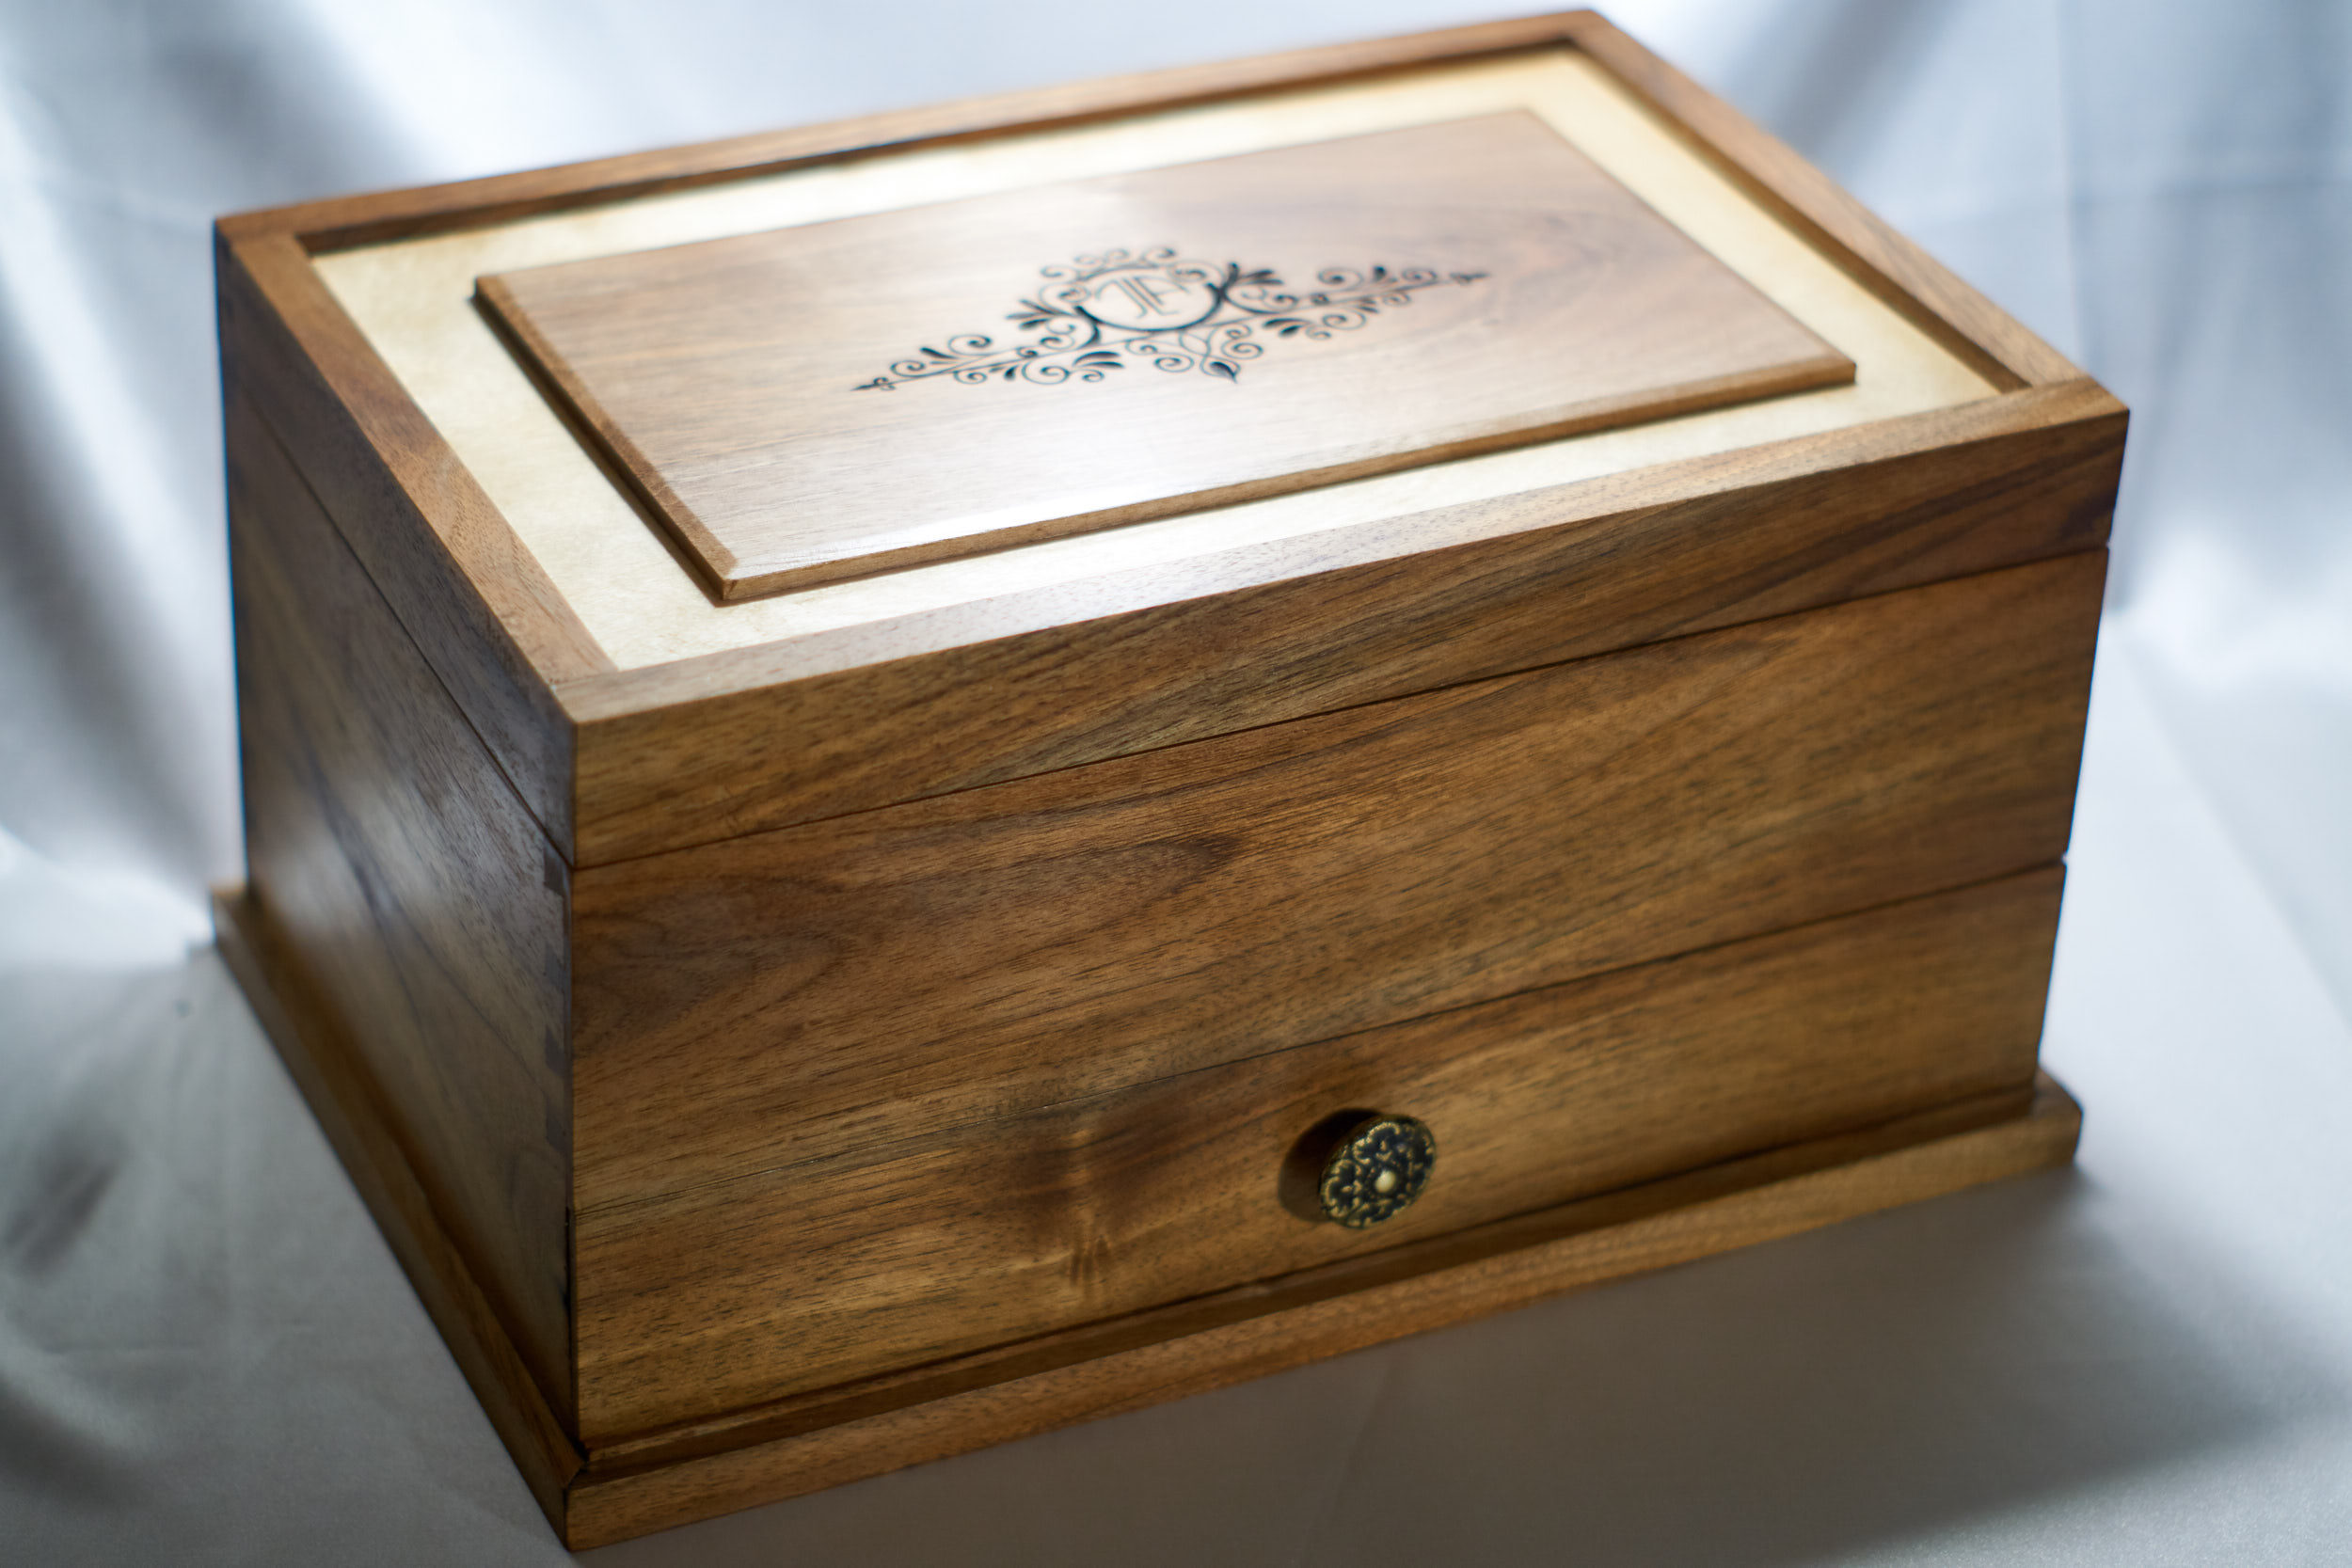 19 4 20 0001 medium  MJD - Dovetailed Jewelry Box